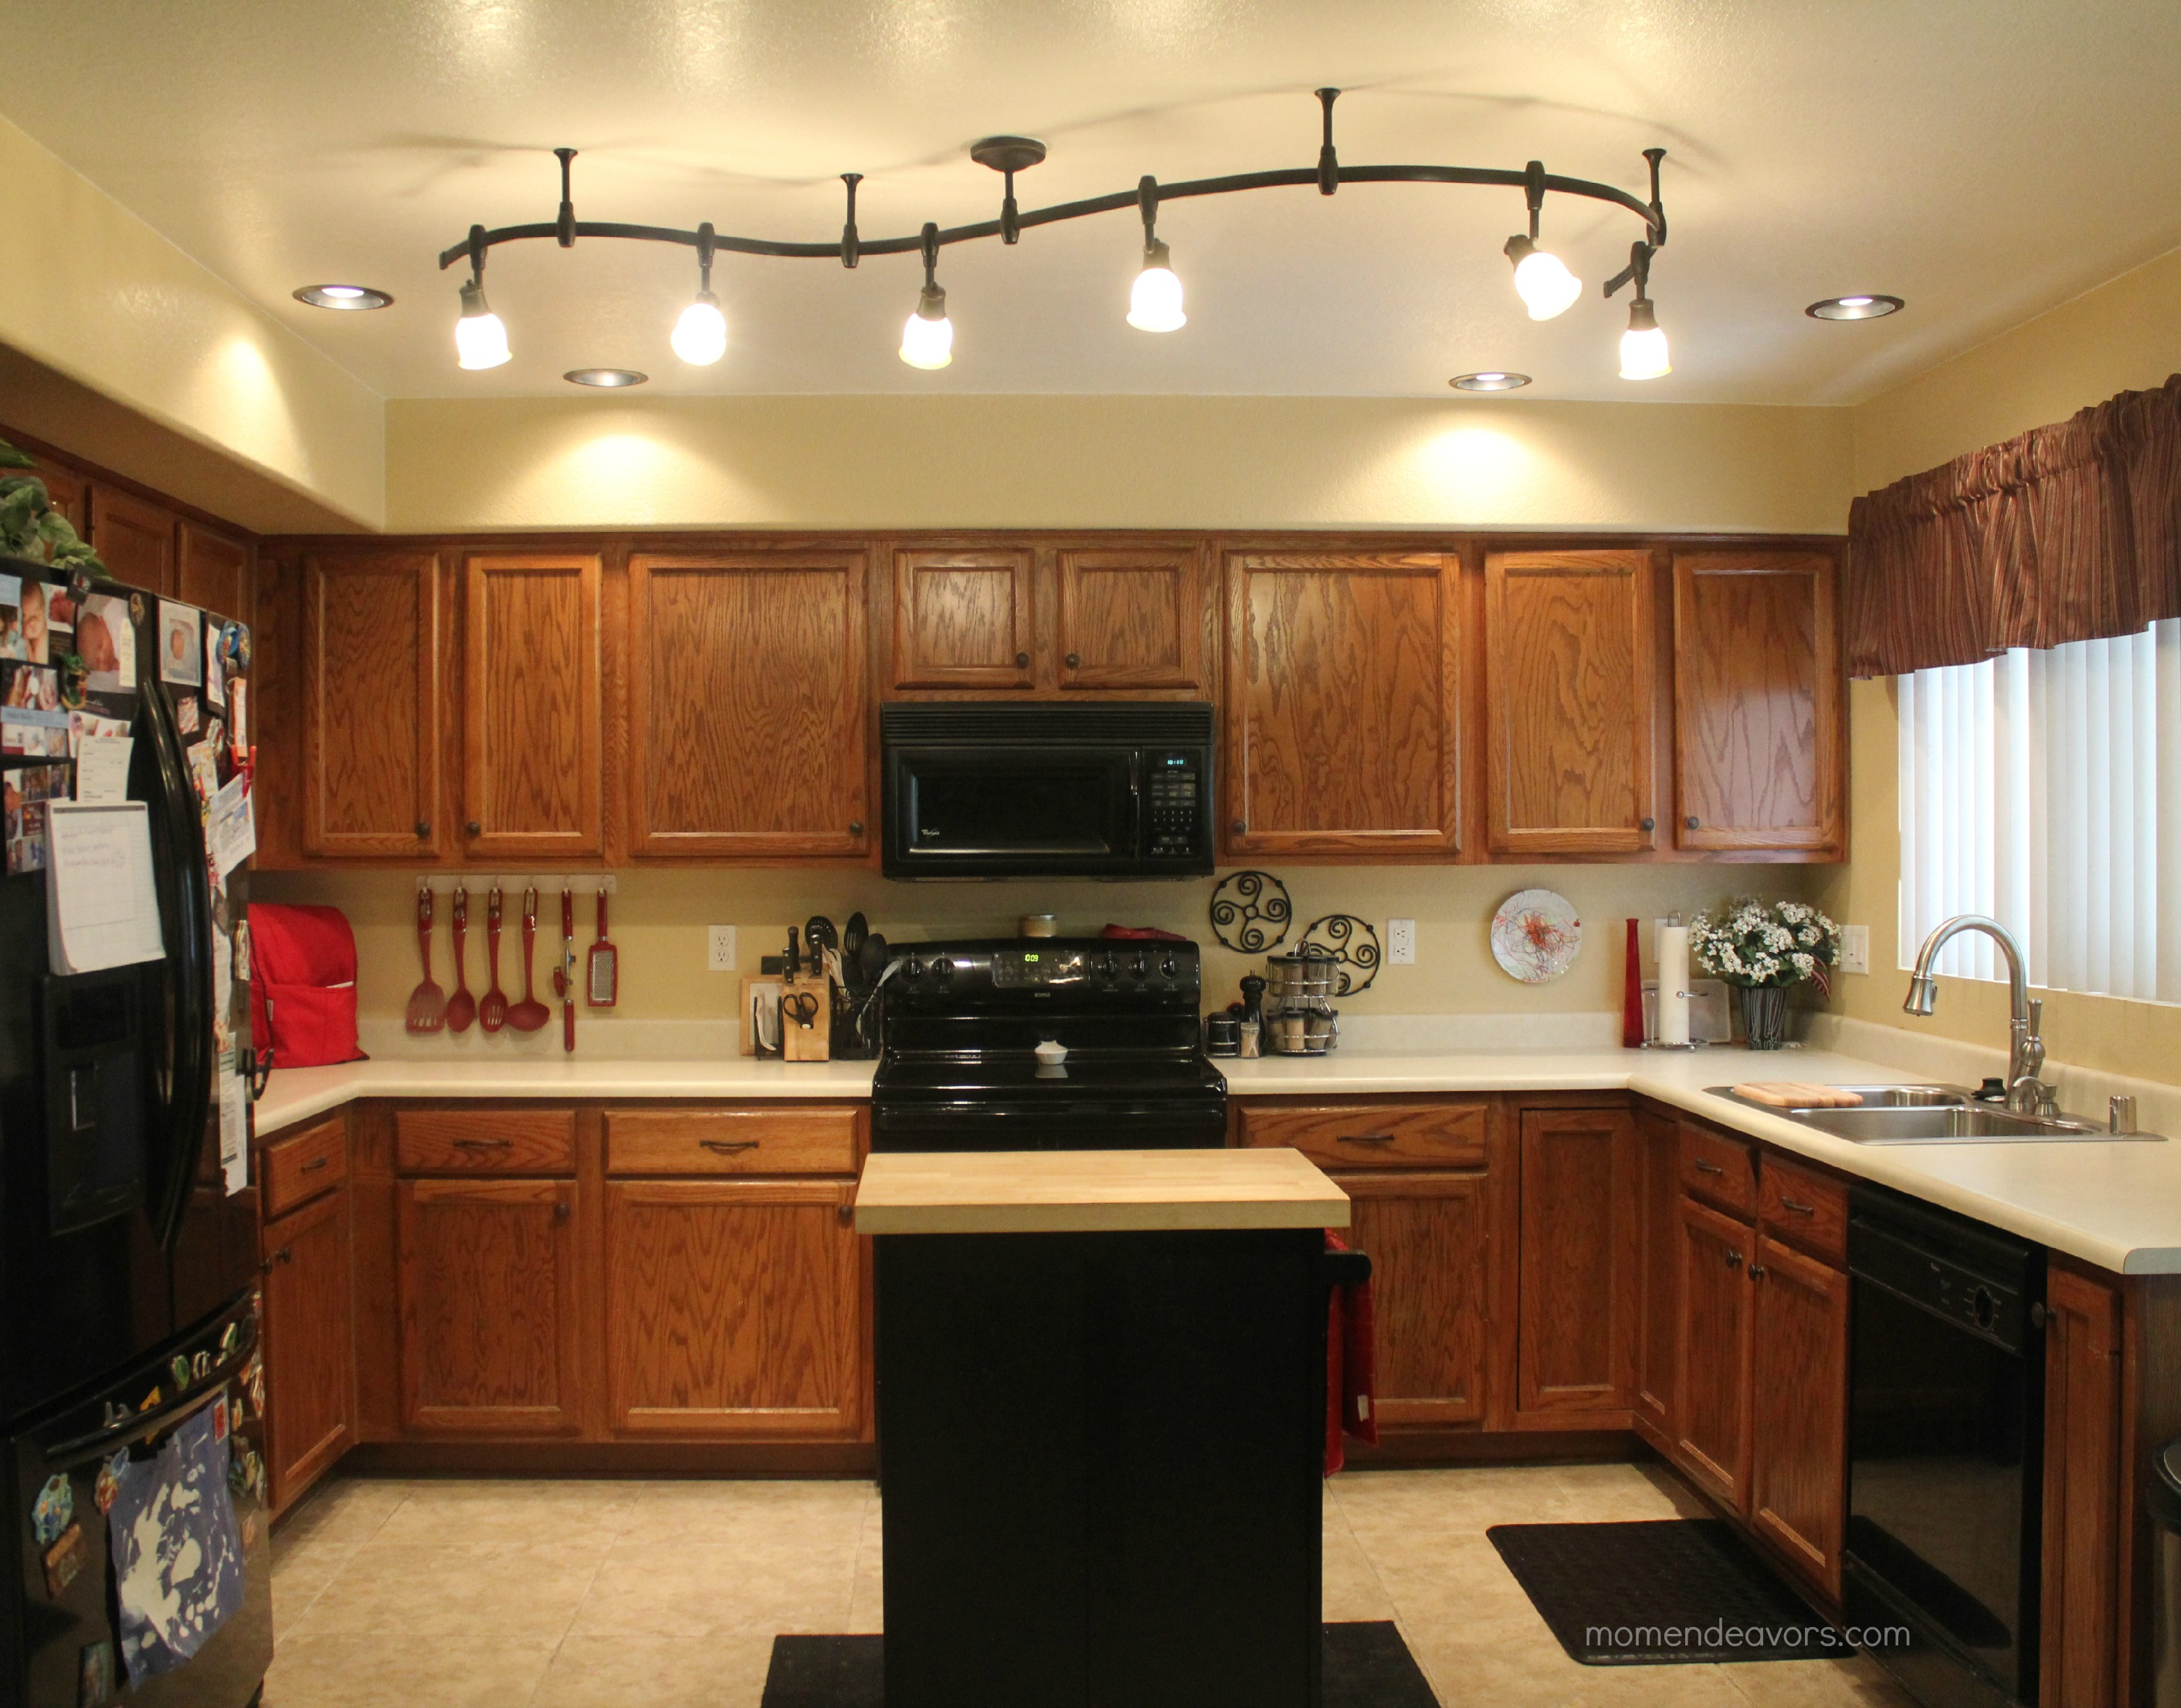 kitchen ceiling lights fluorescent photo - 5